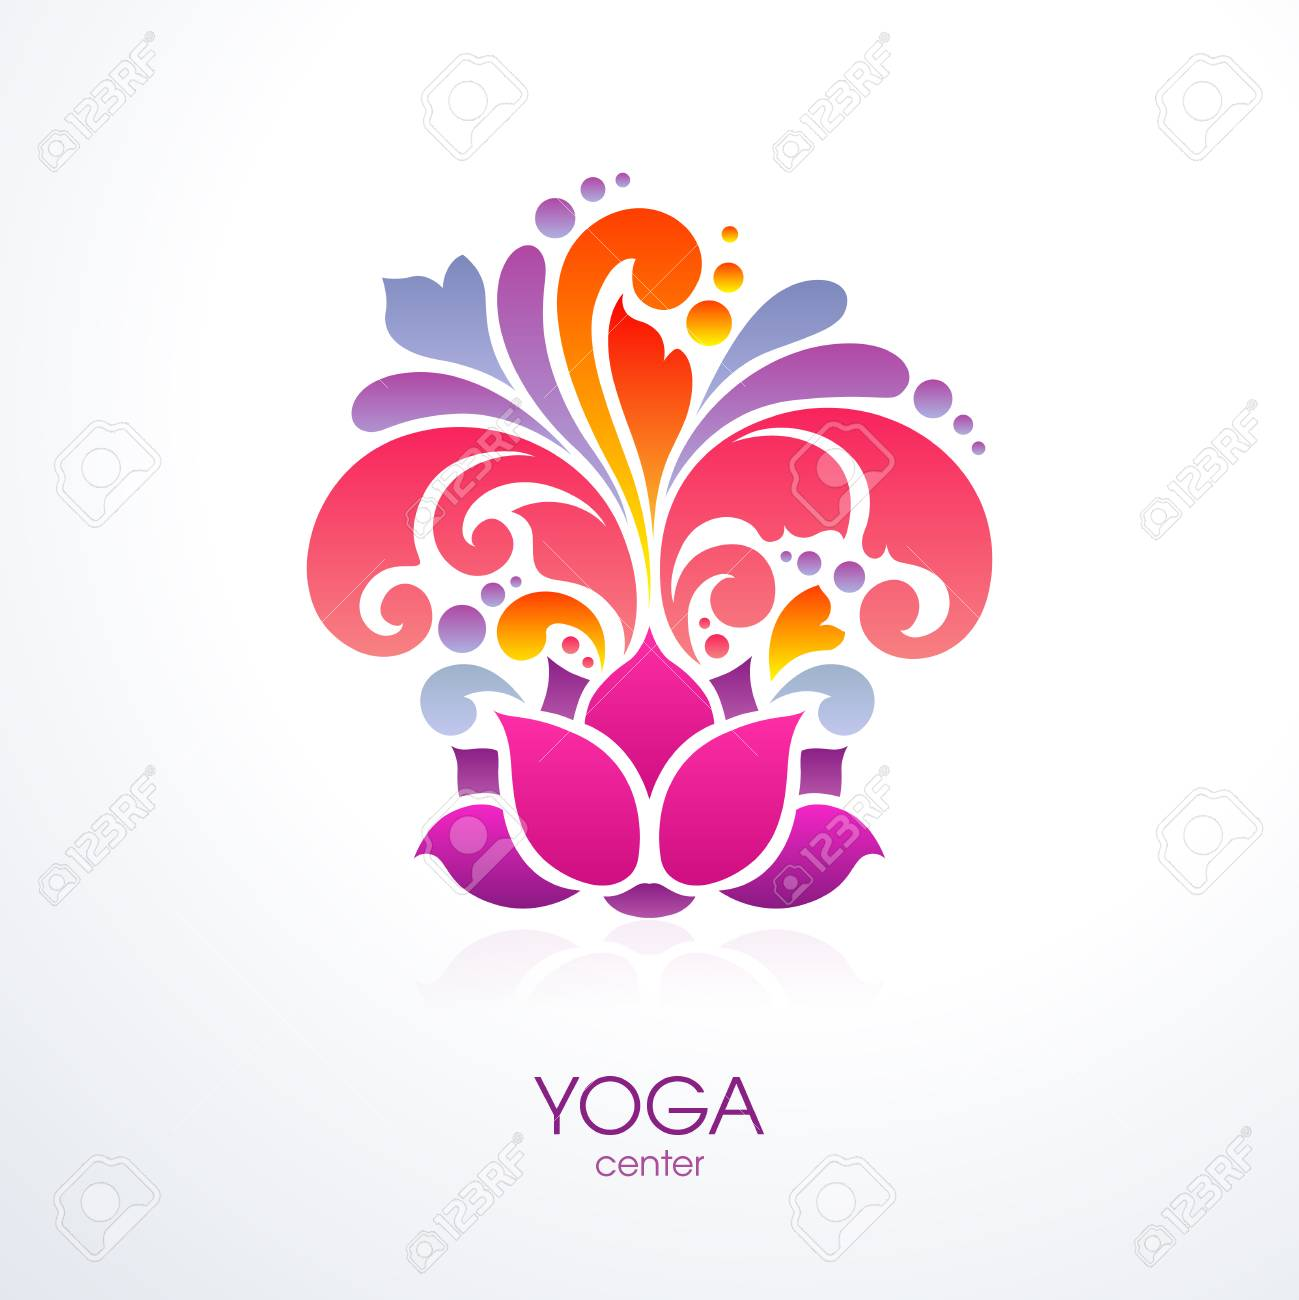 Abstract Colorful Ornate Splash Yoga Background Decorative Lotus Royalty Free Cliparts Vectors And Stock Illustration Image 97386651